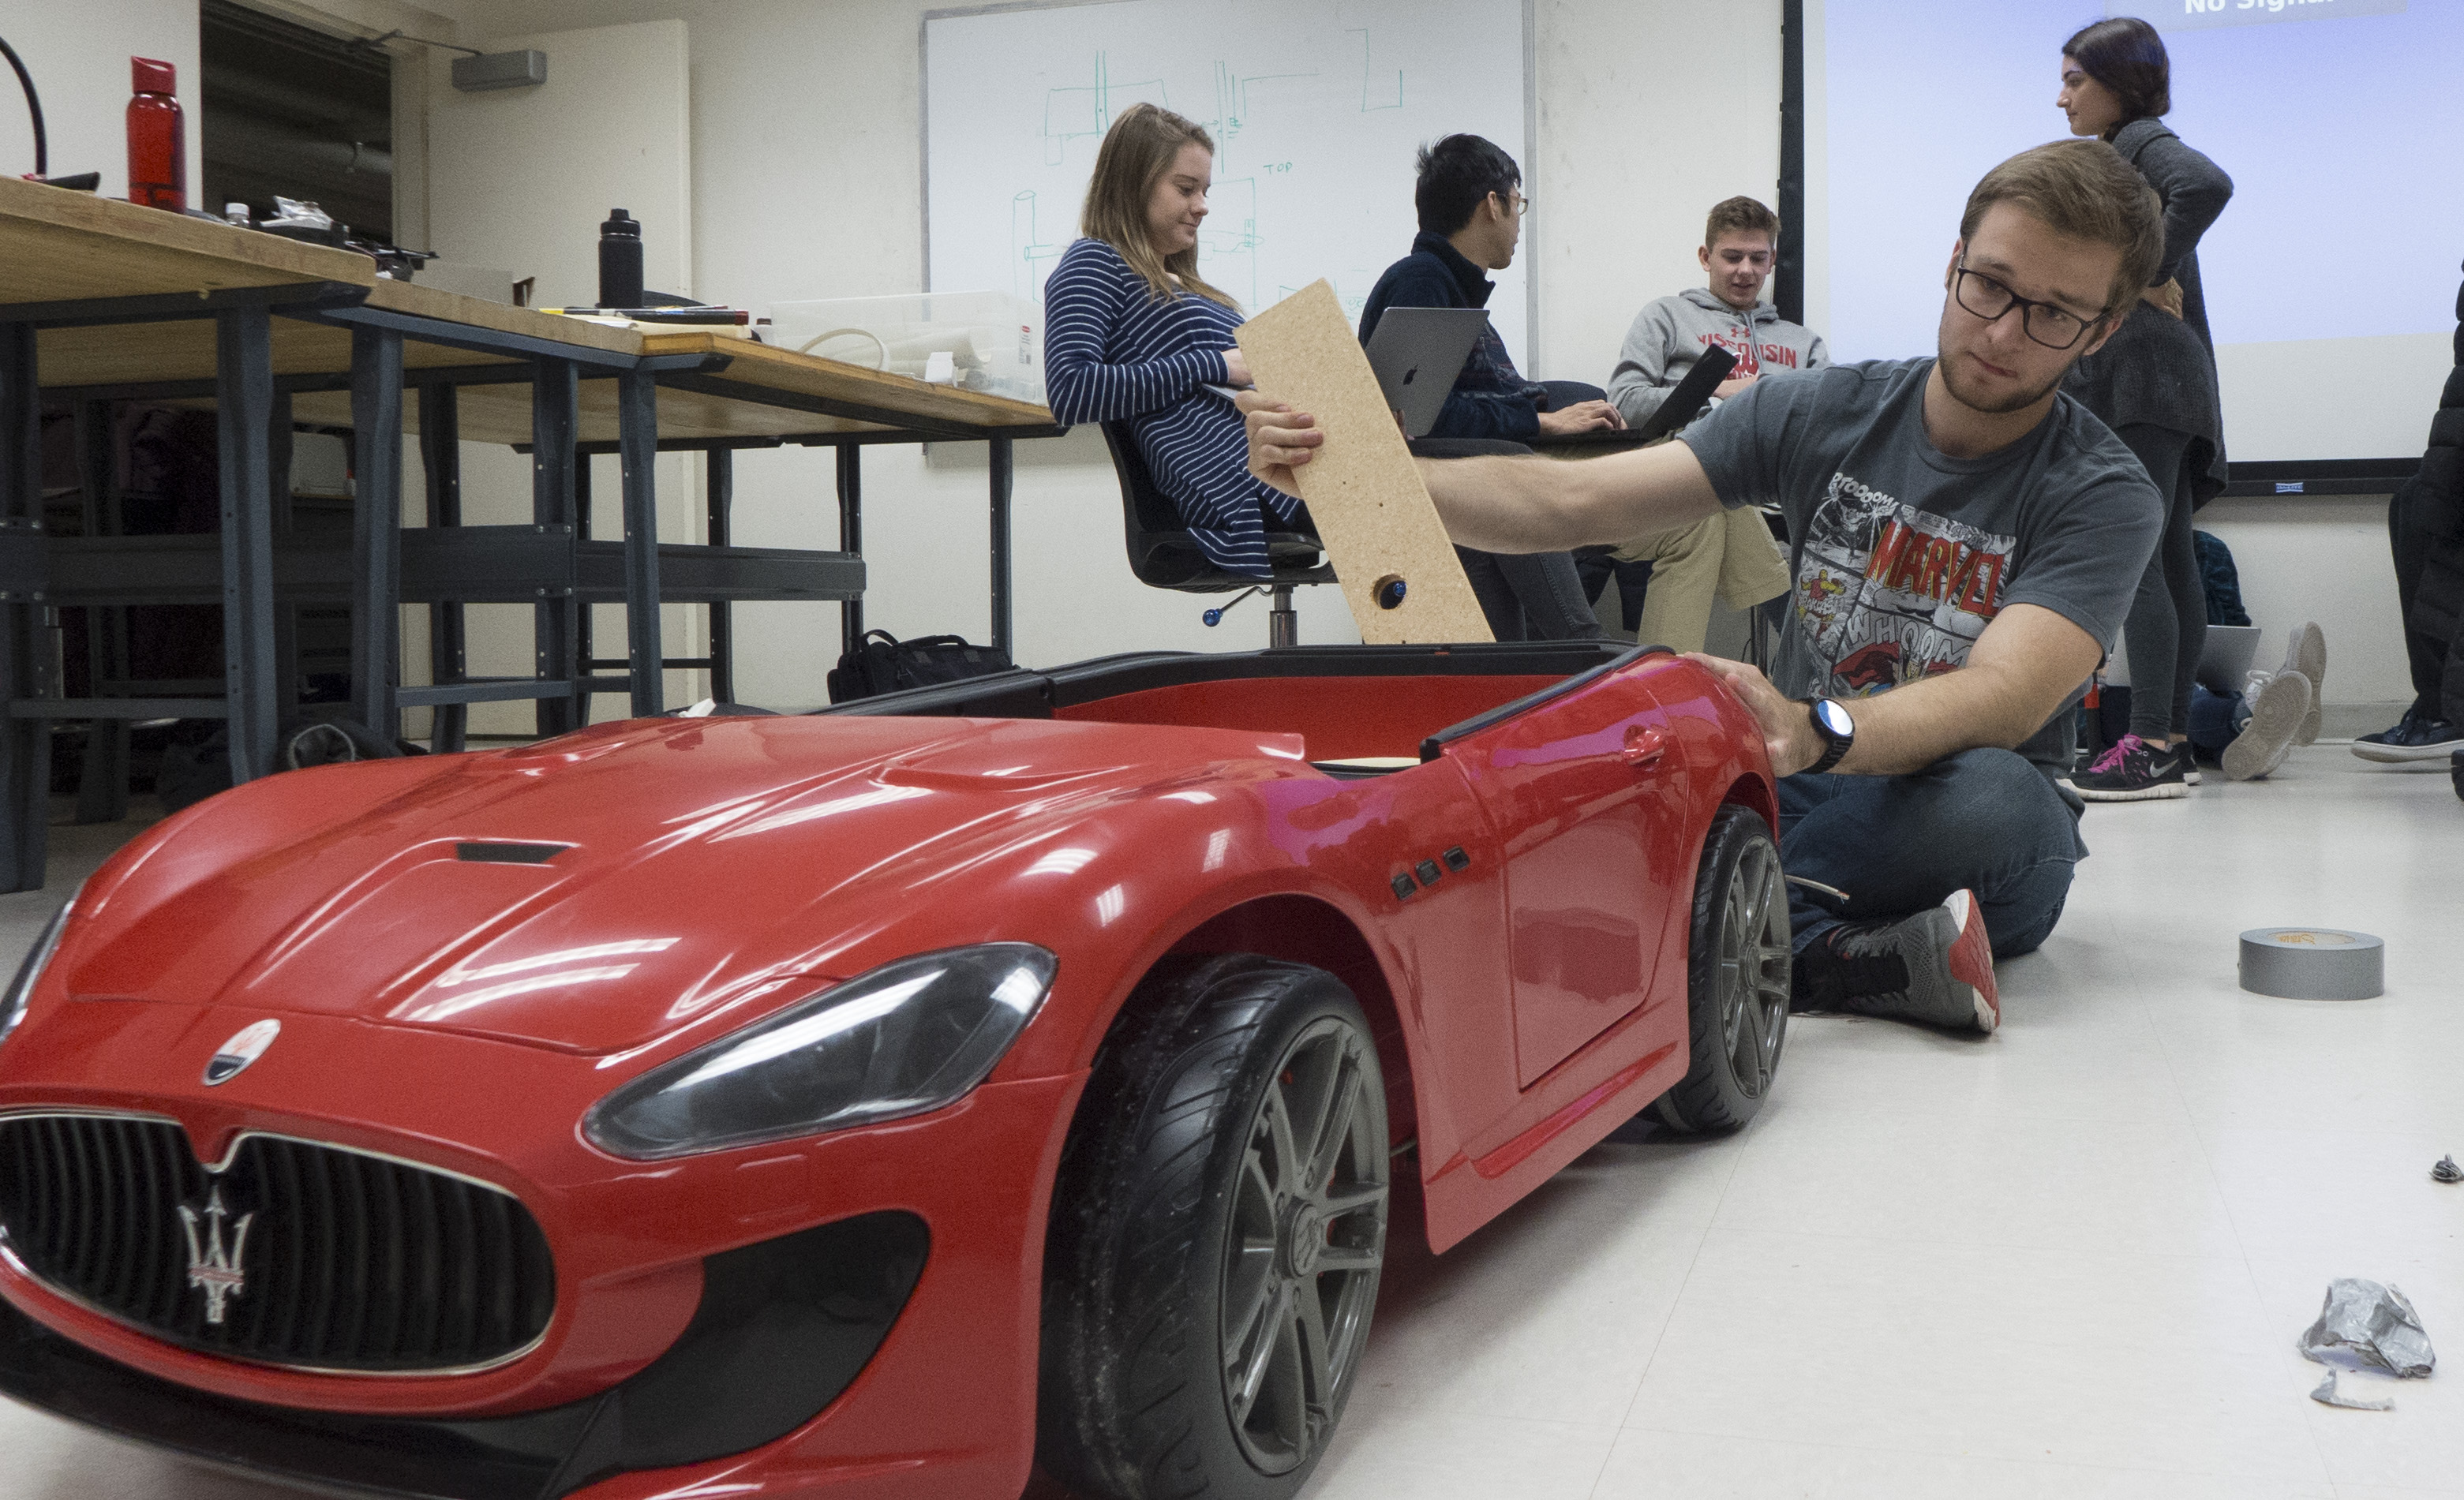 Do You Know Where Your Car Is Madisons >> Projects On Display As Engineering Prototyping Class Wets Feet